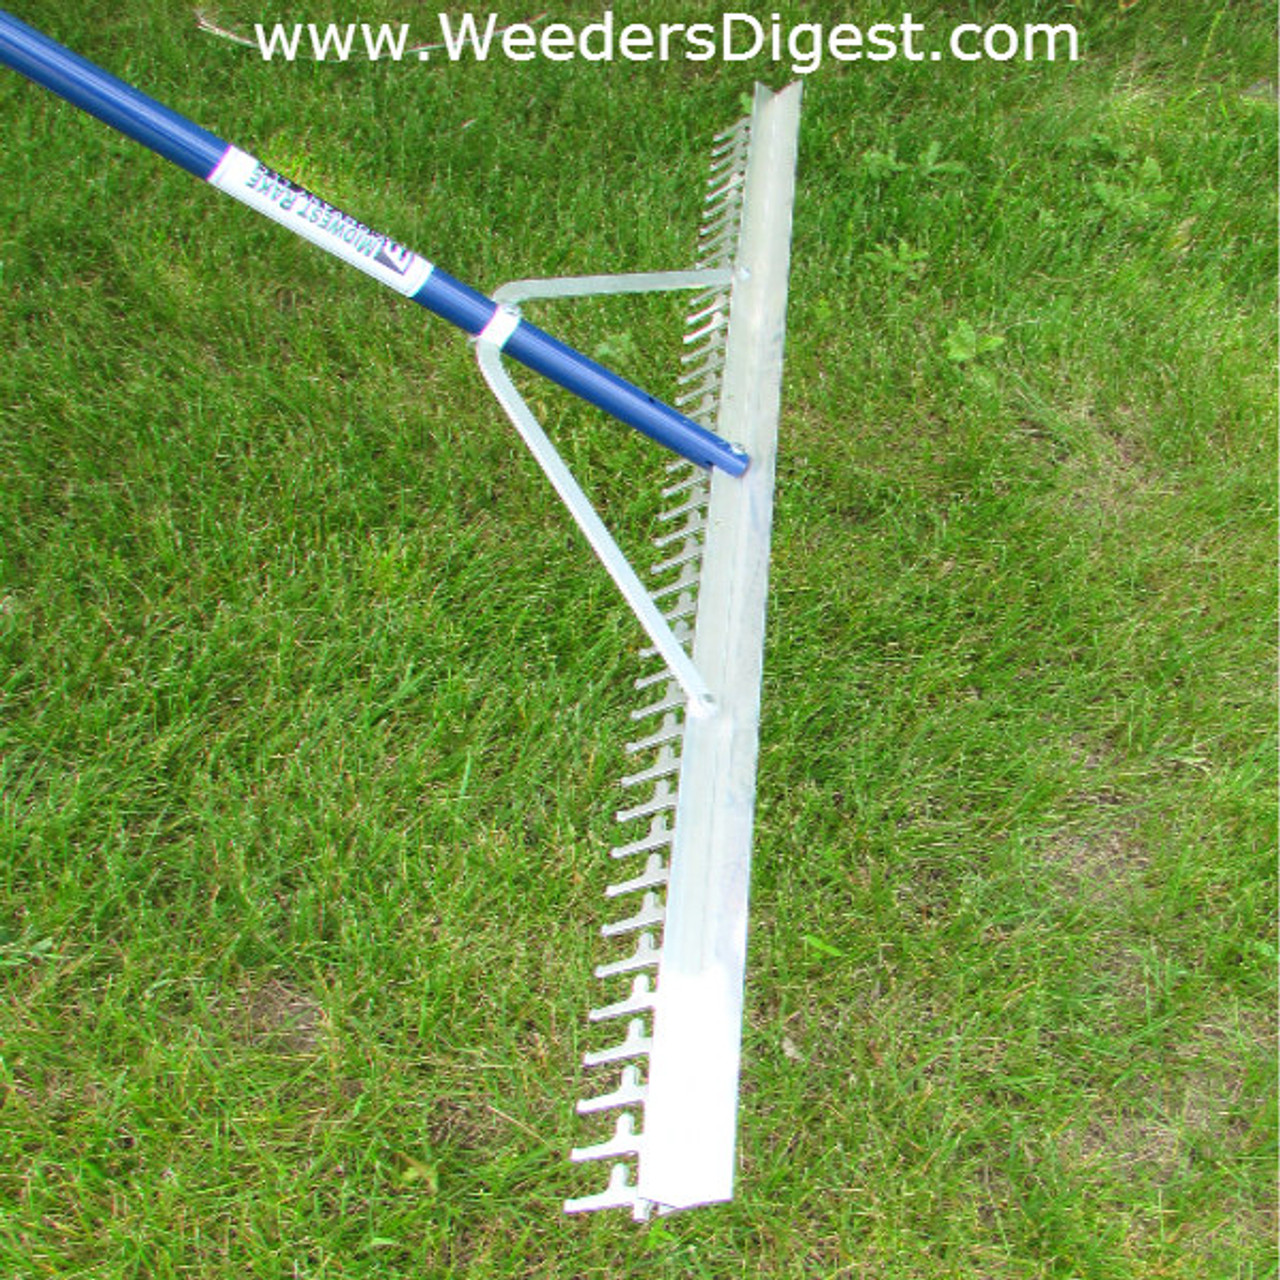 Super Long & Wide Lake Weed & Beach Landscaping Rake